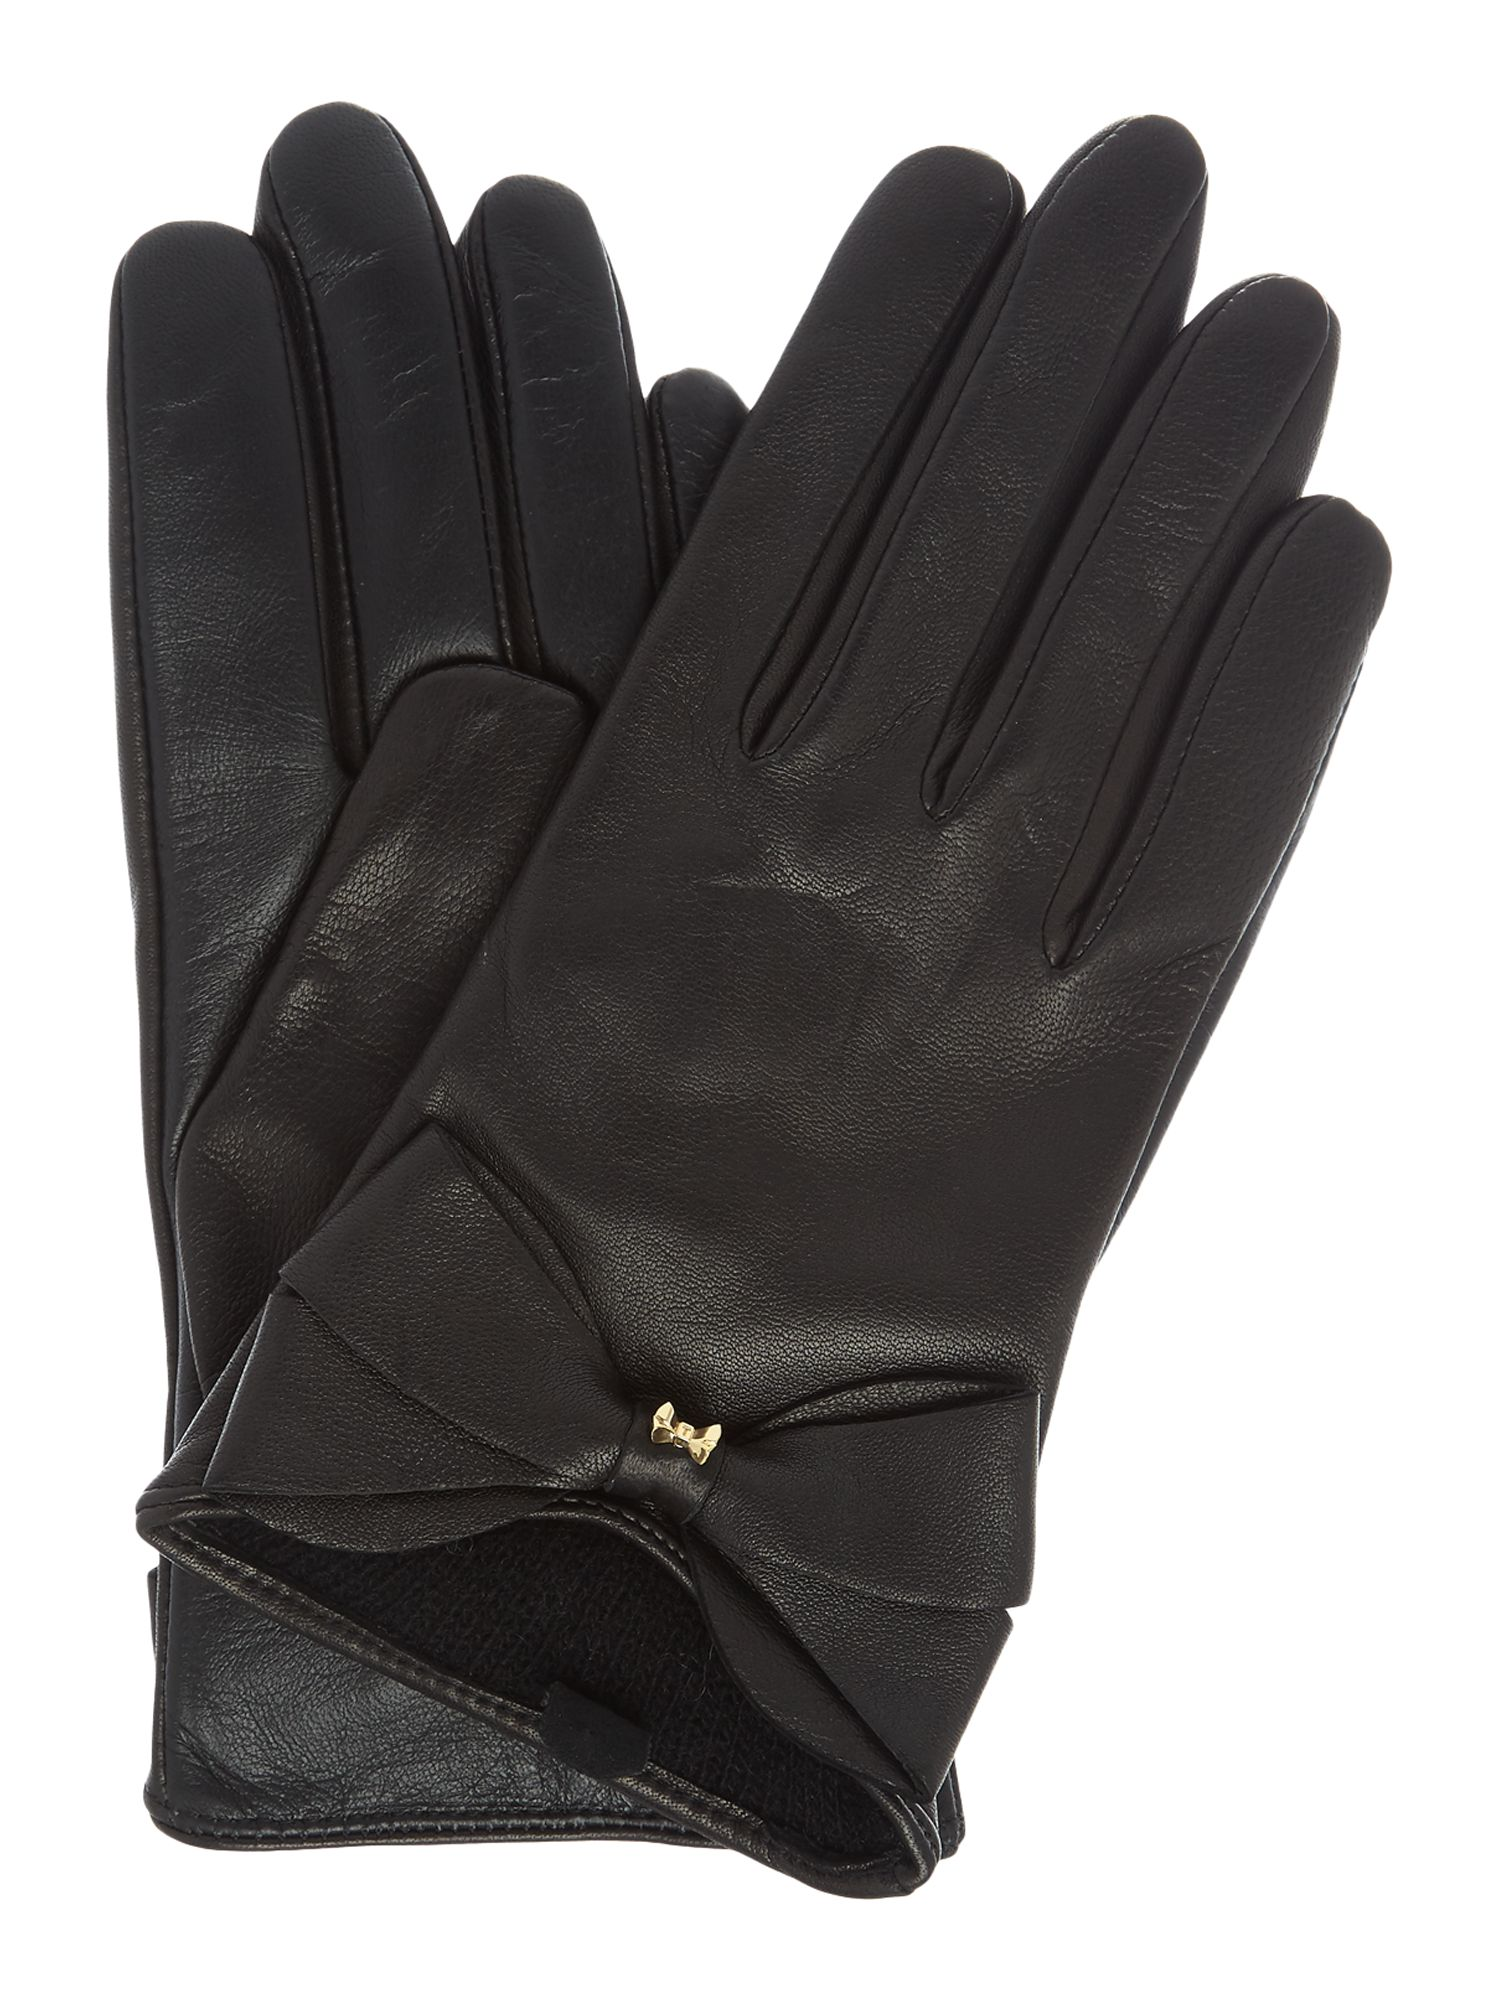 Vintage Style Gloves- Long, Wrist, Evening, Day, Leather, Lace Ted Baker Lynna large bow leather glove £75.00 AT vintagedancer.com